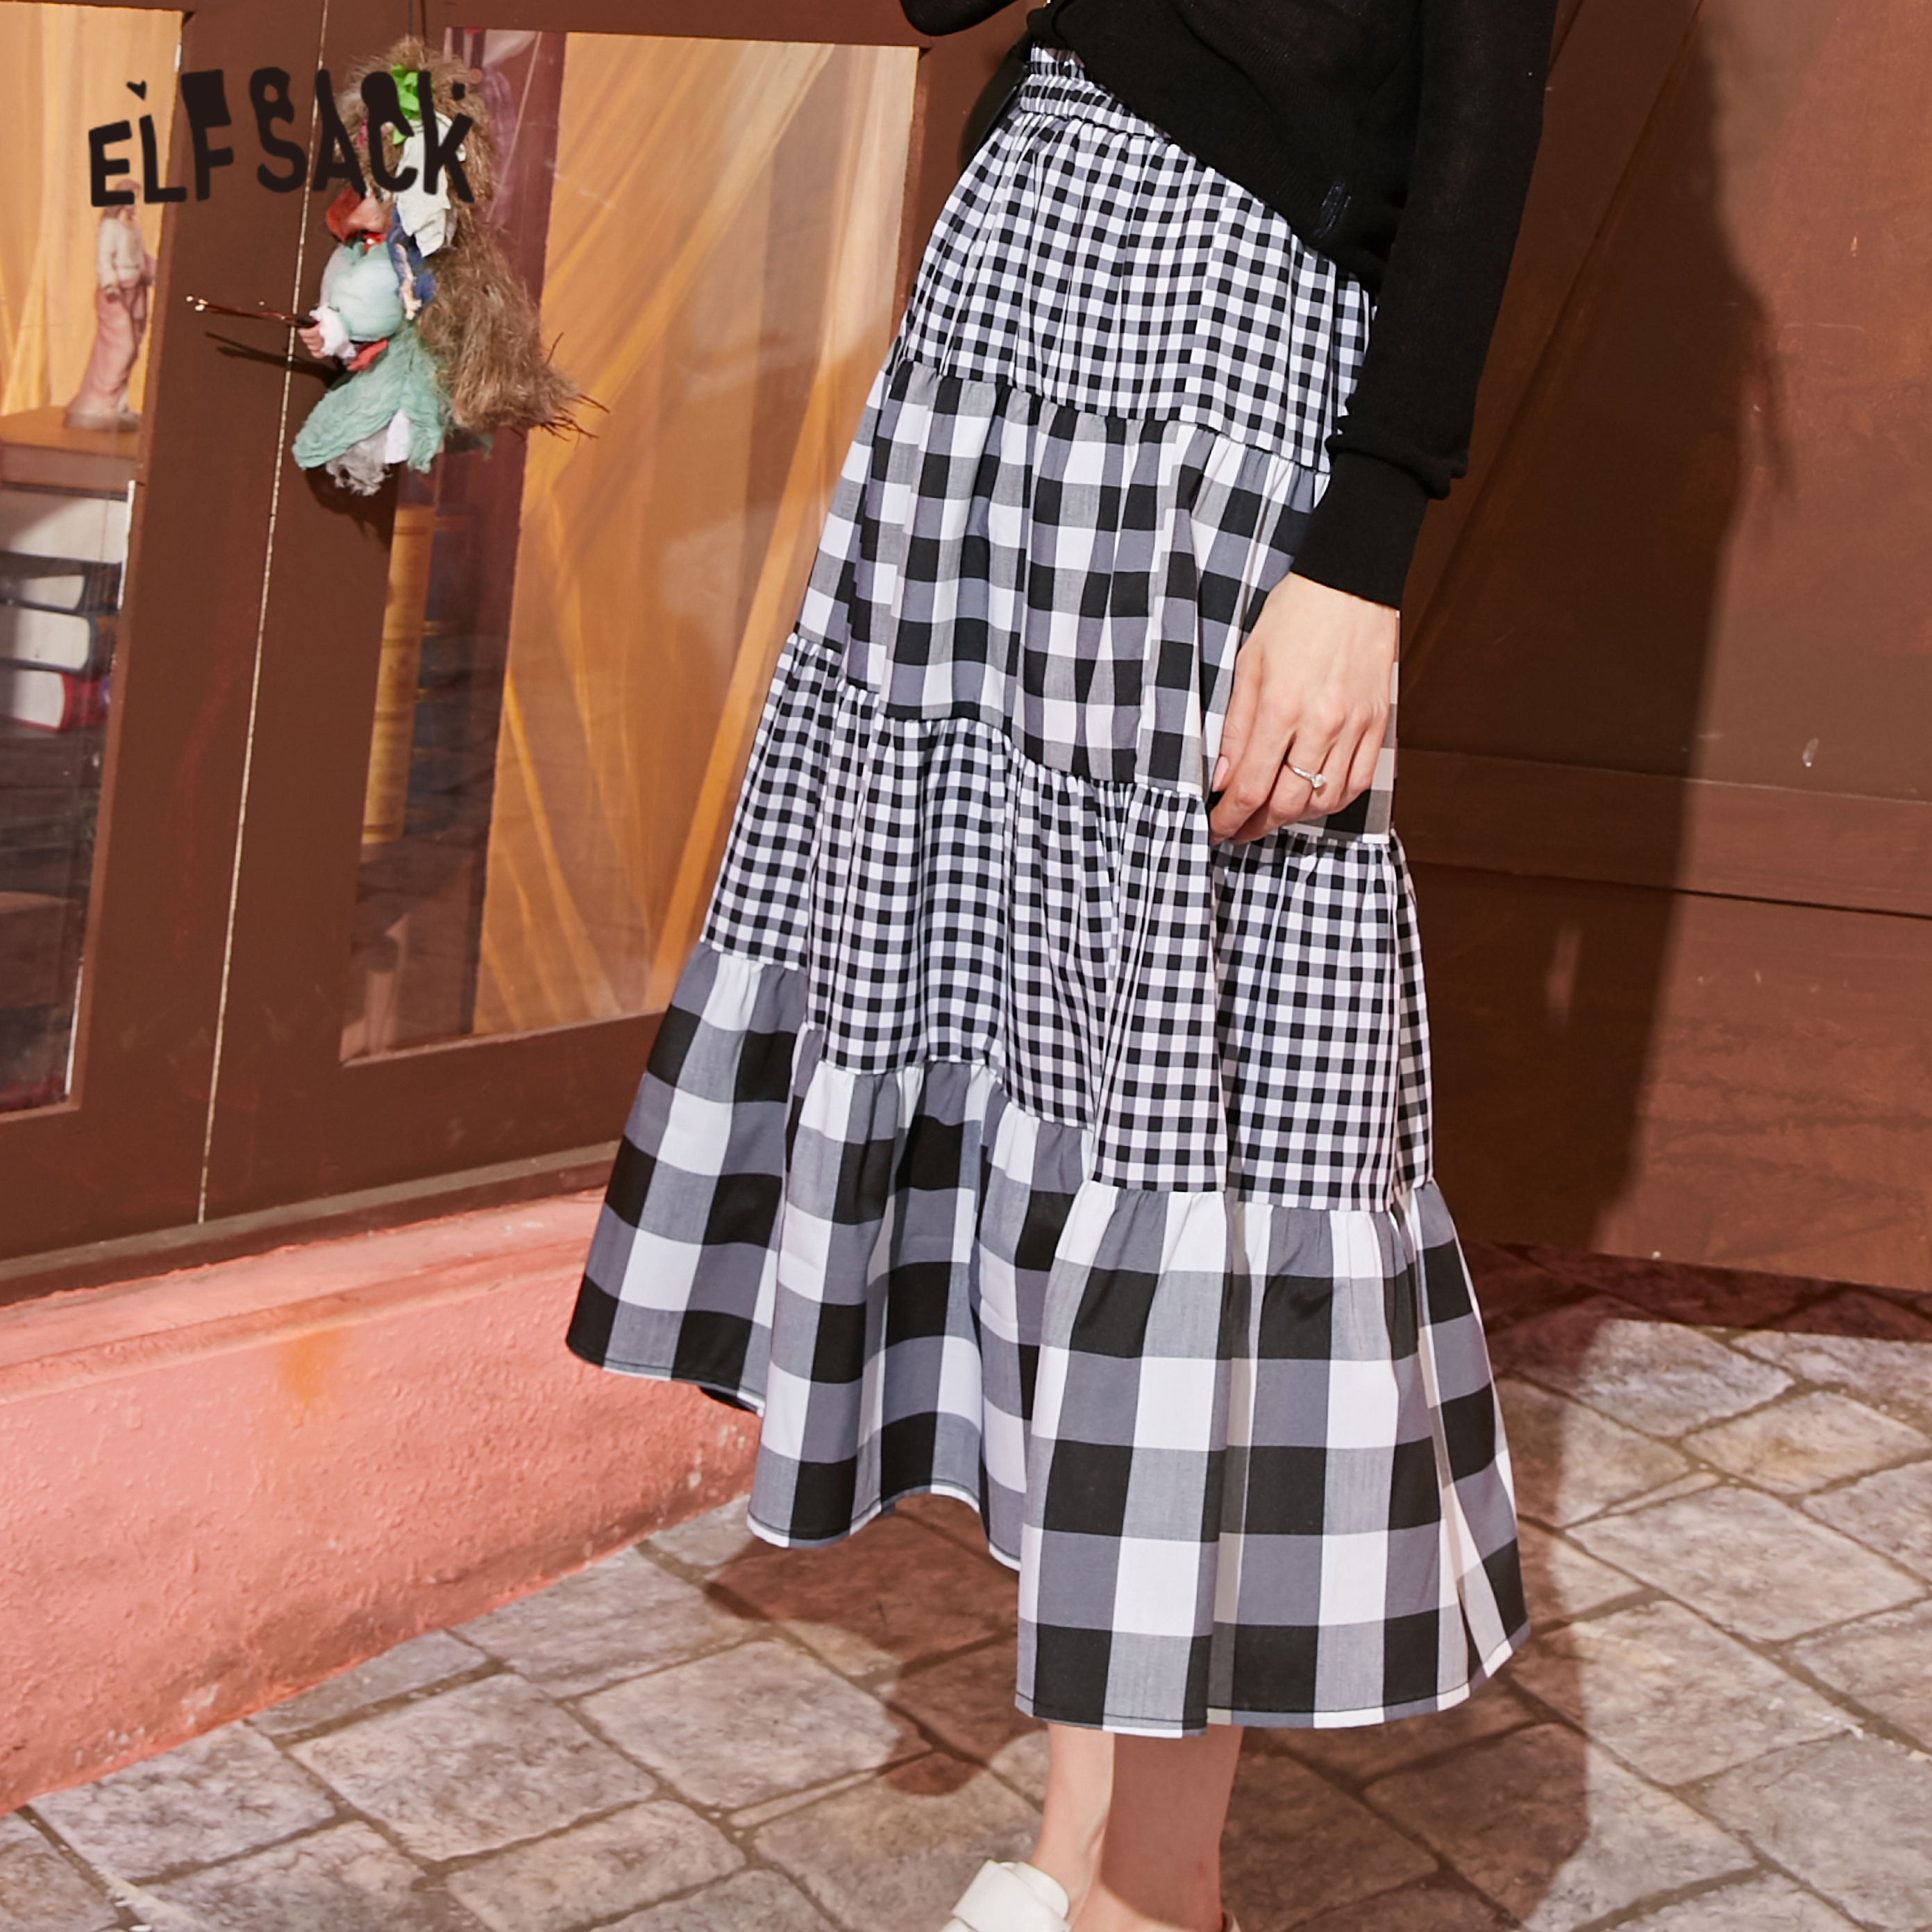 ELFSACK Black White Plaid Patchwork Casual Women Preppy Skirts 2020 Spring New Elegant Elastic Waist A Line Ladies Daily Skirt